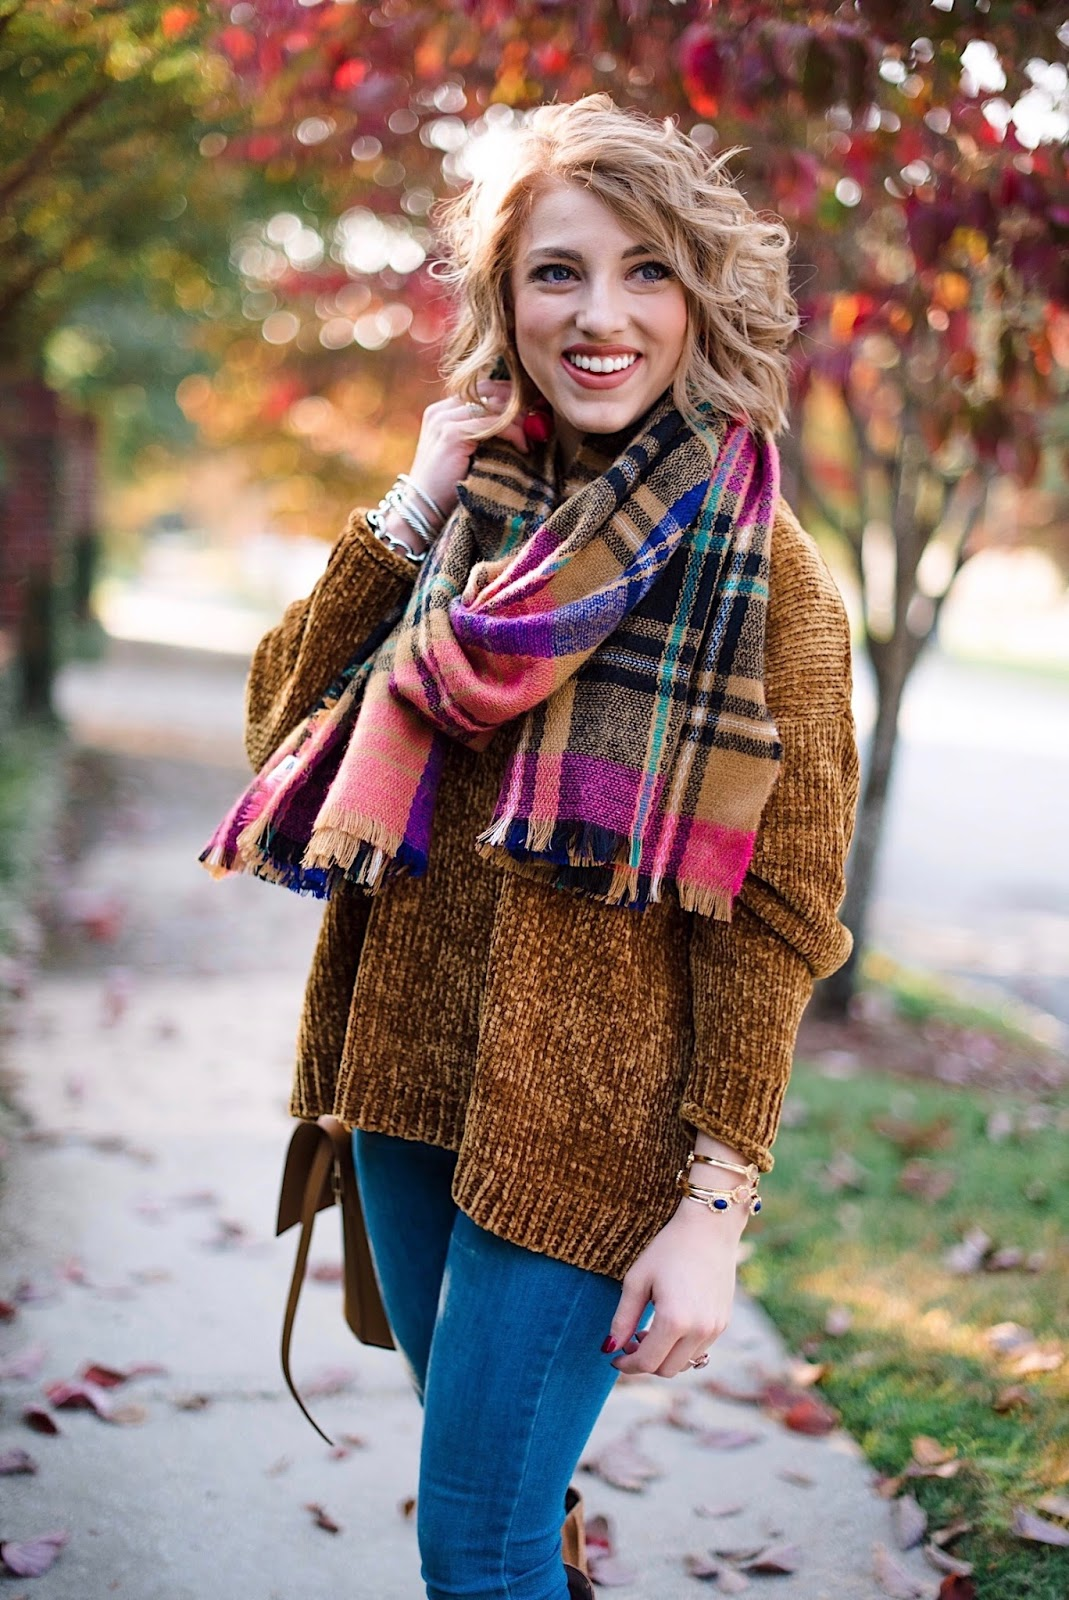 Chenille Sweater & Plaid Scarf - Something Delightful Blog